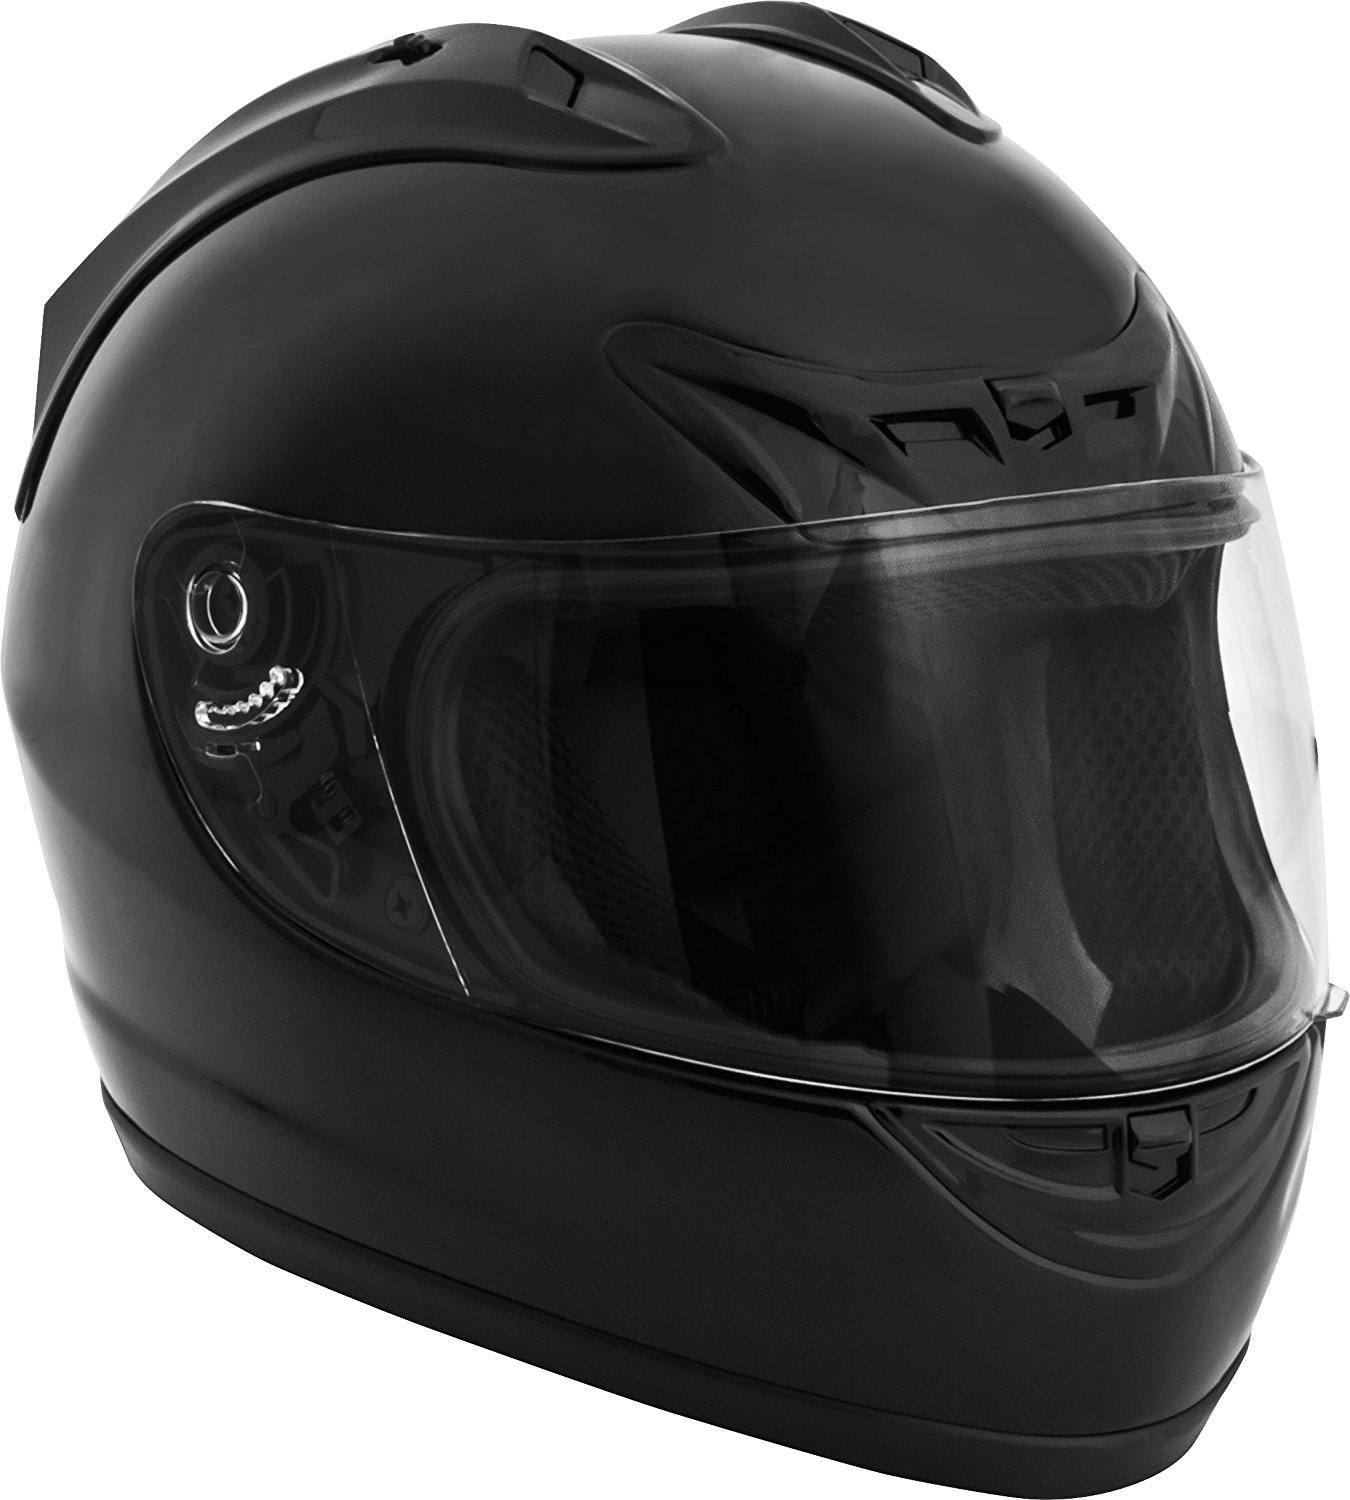 helmet helmets face motorcycle brands fuel moto sh